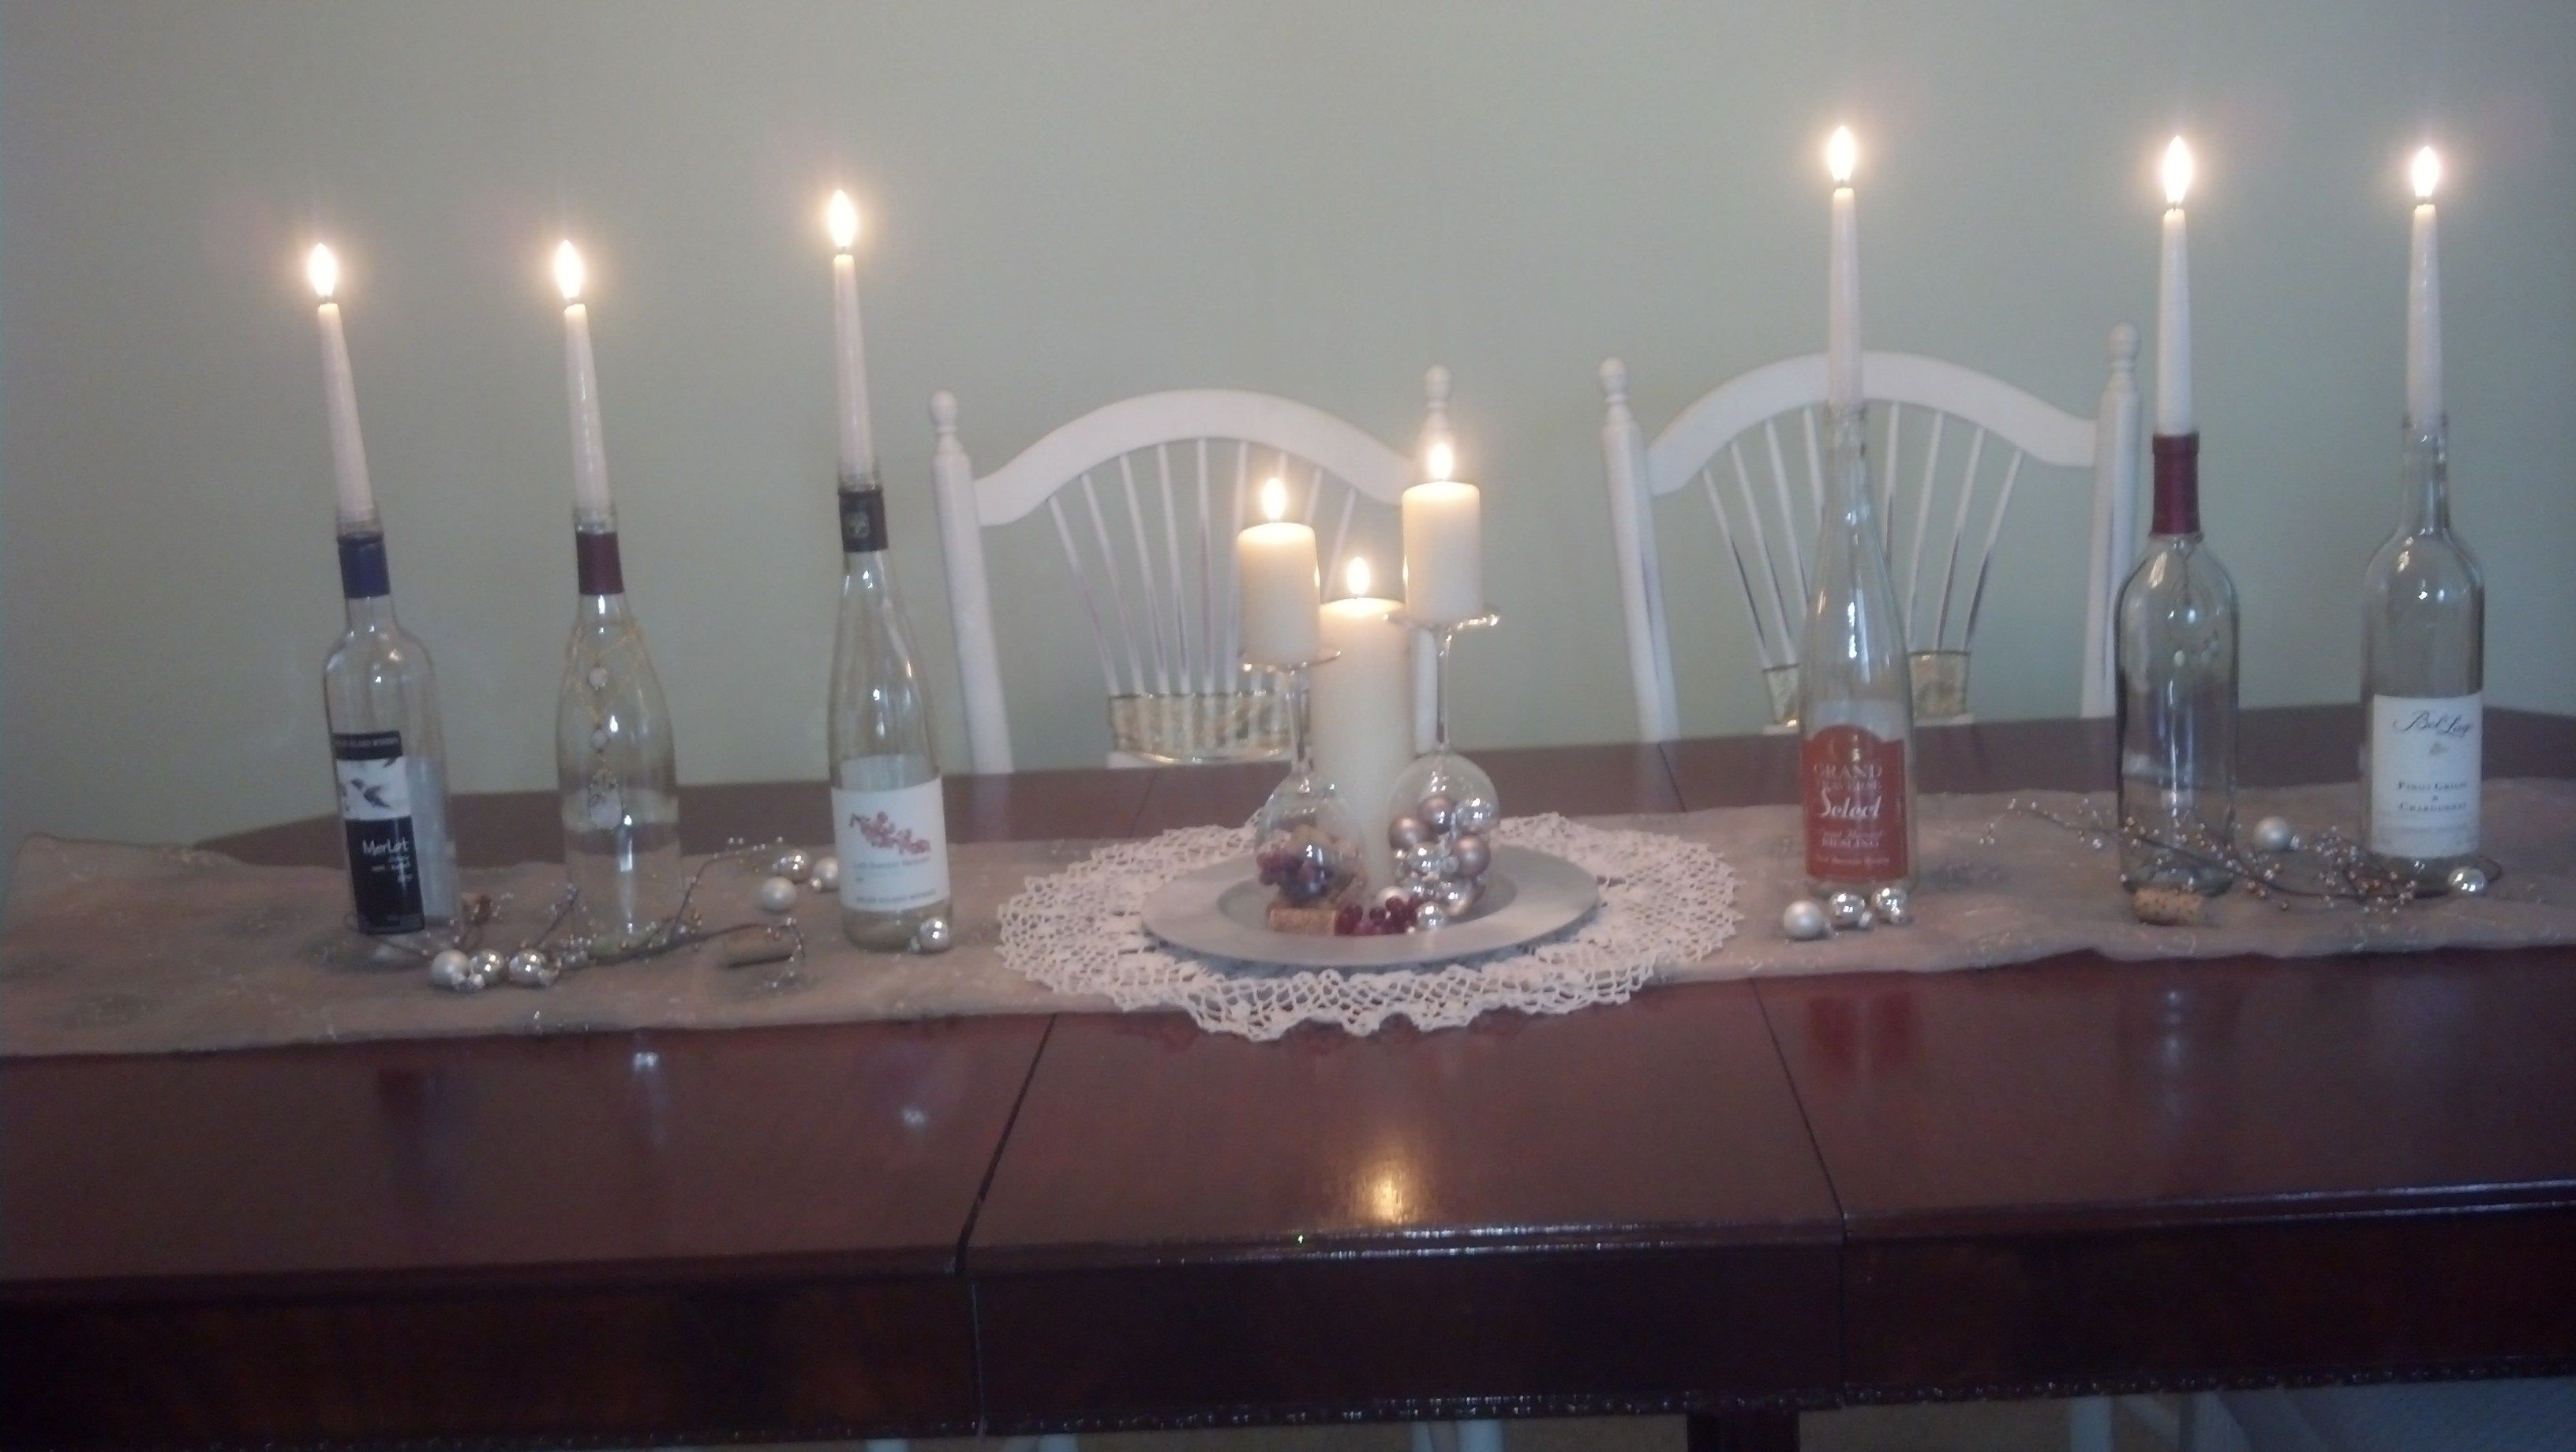 wine theme Christmas, wine glass, wine bottle and candles for the table